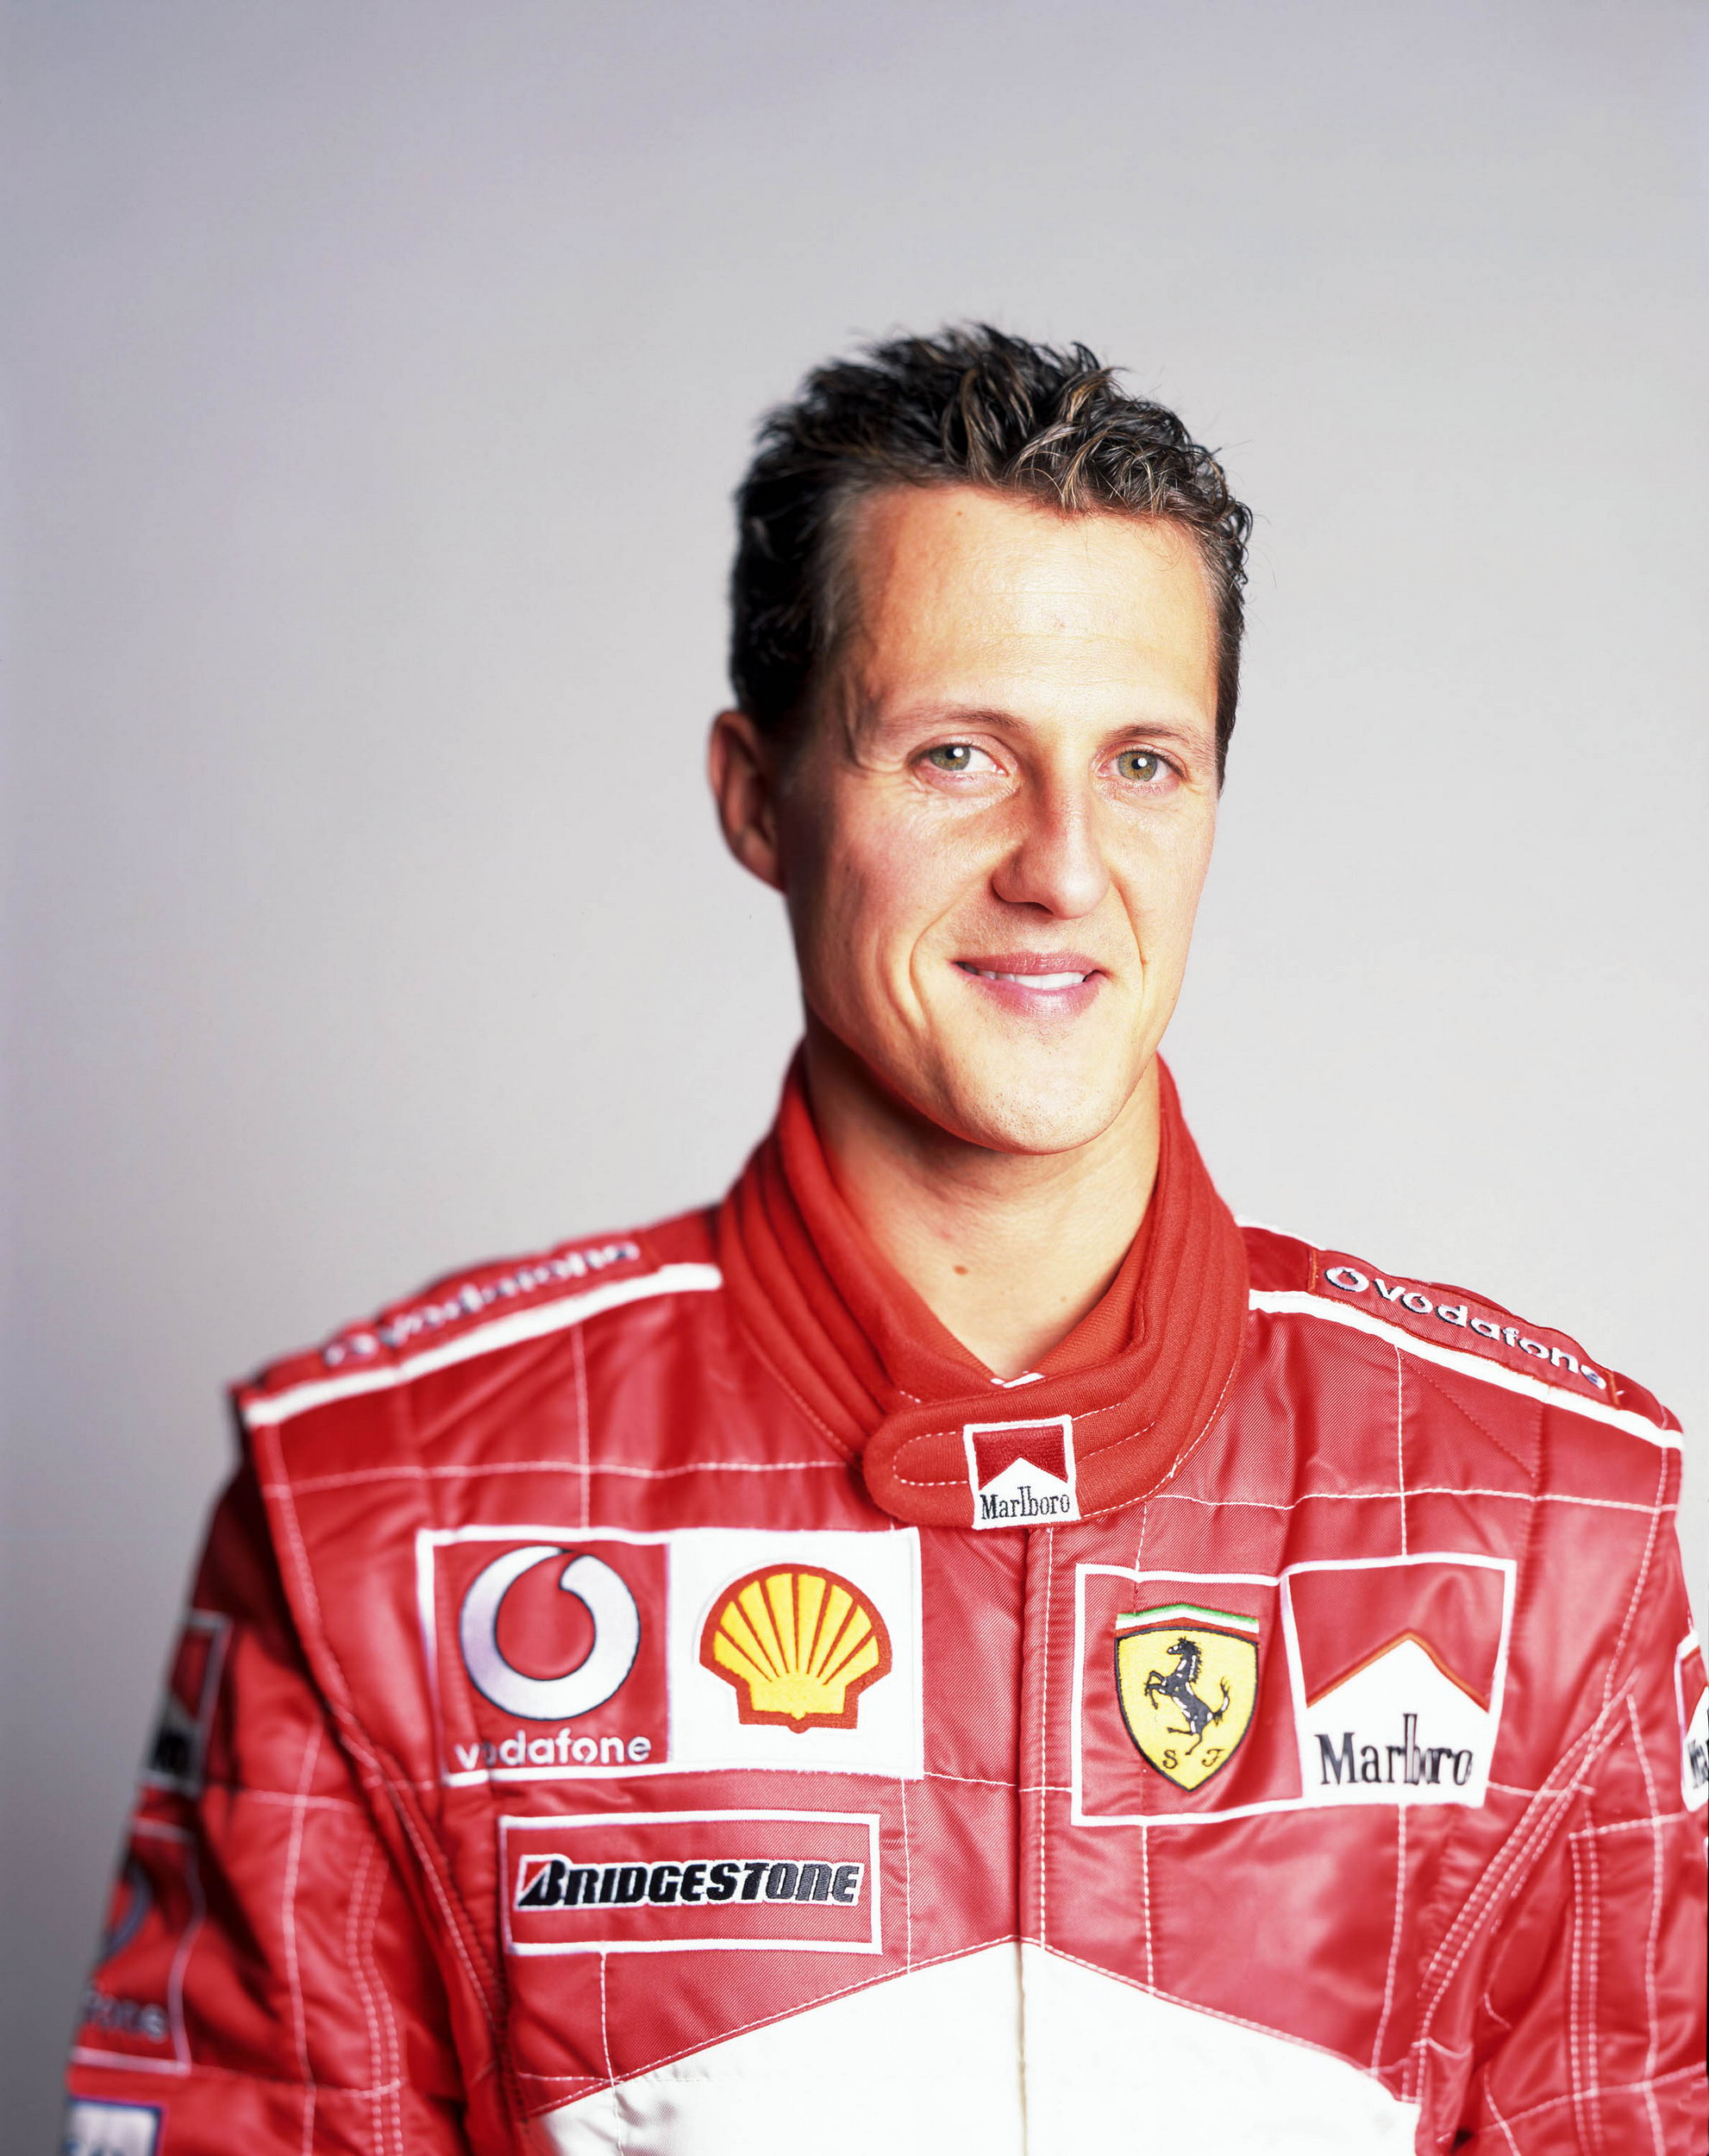 michael schumacher - photo #35